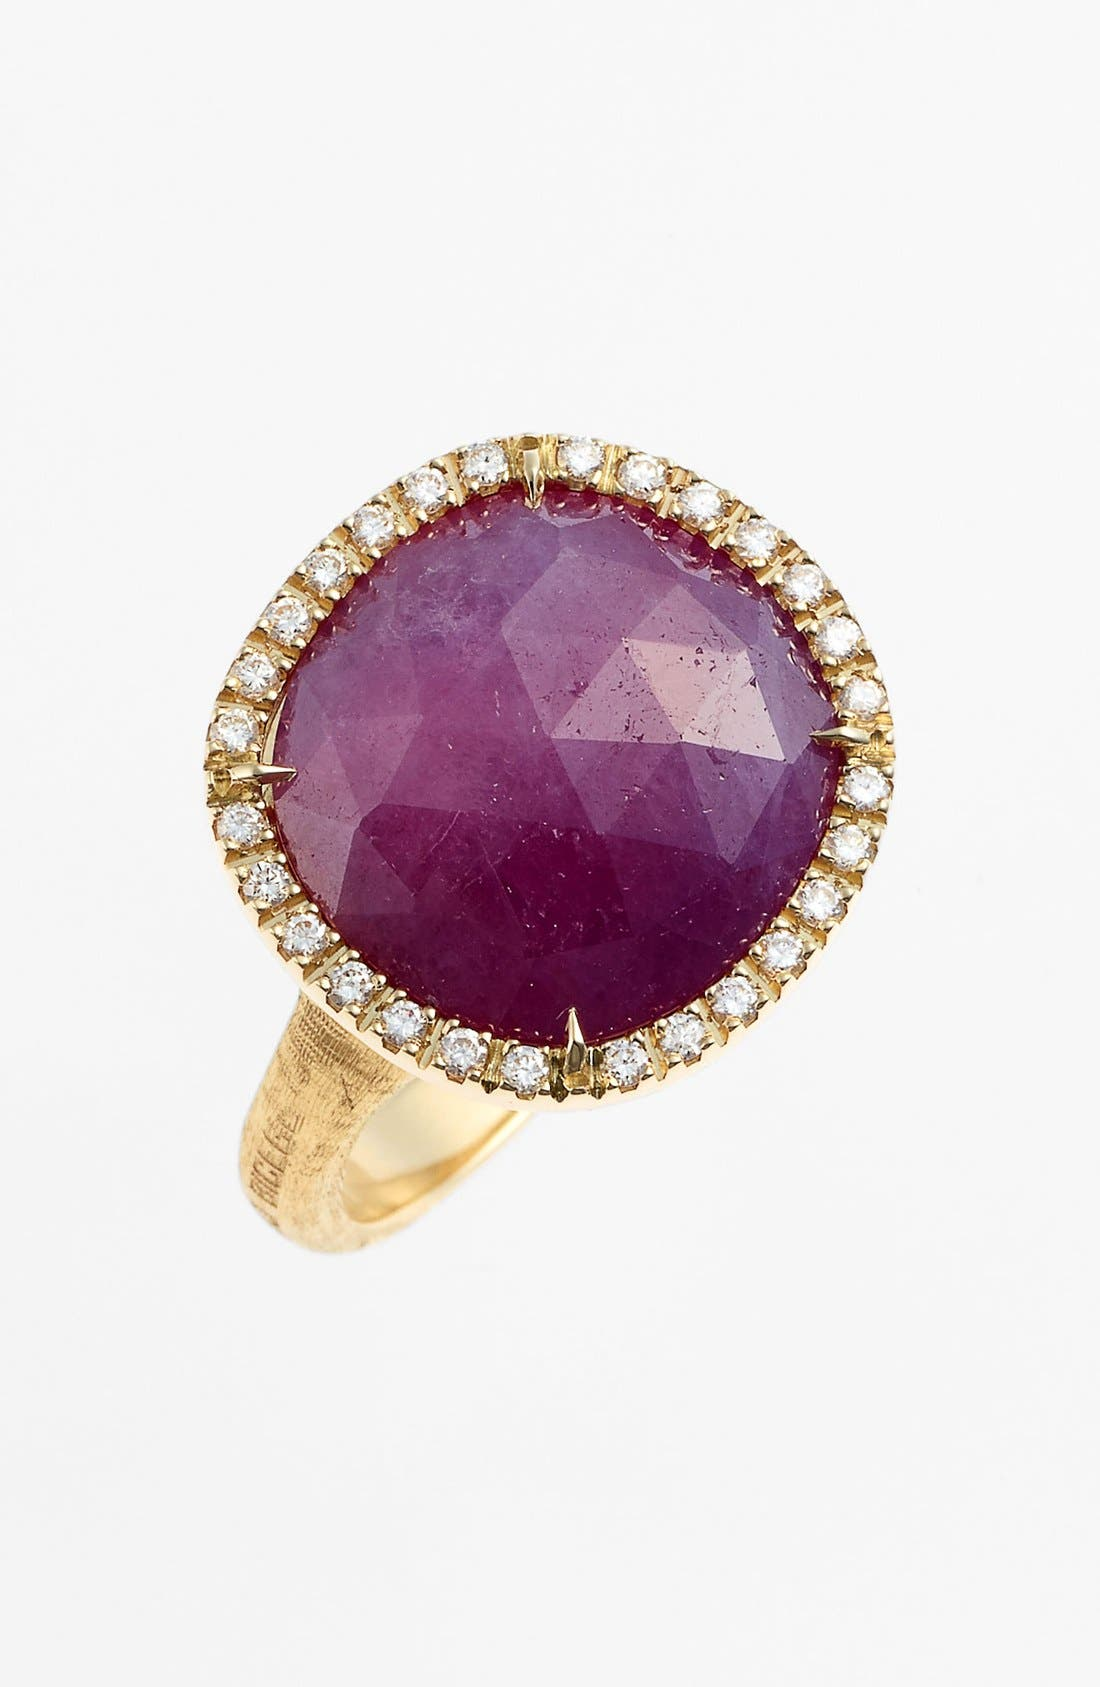 Main Image - Marco Bicego 'Jaipur' Cocktail Ring